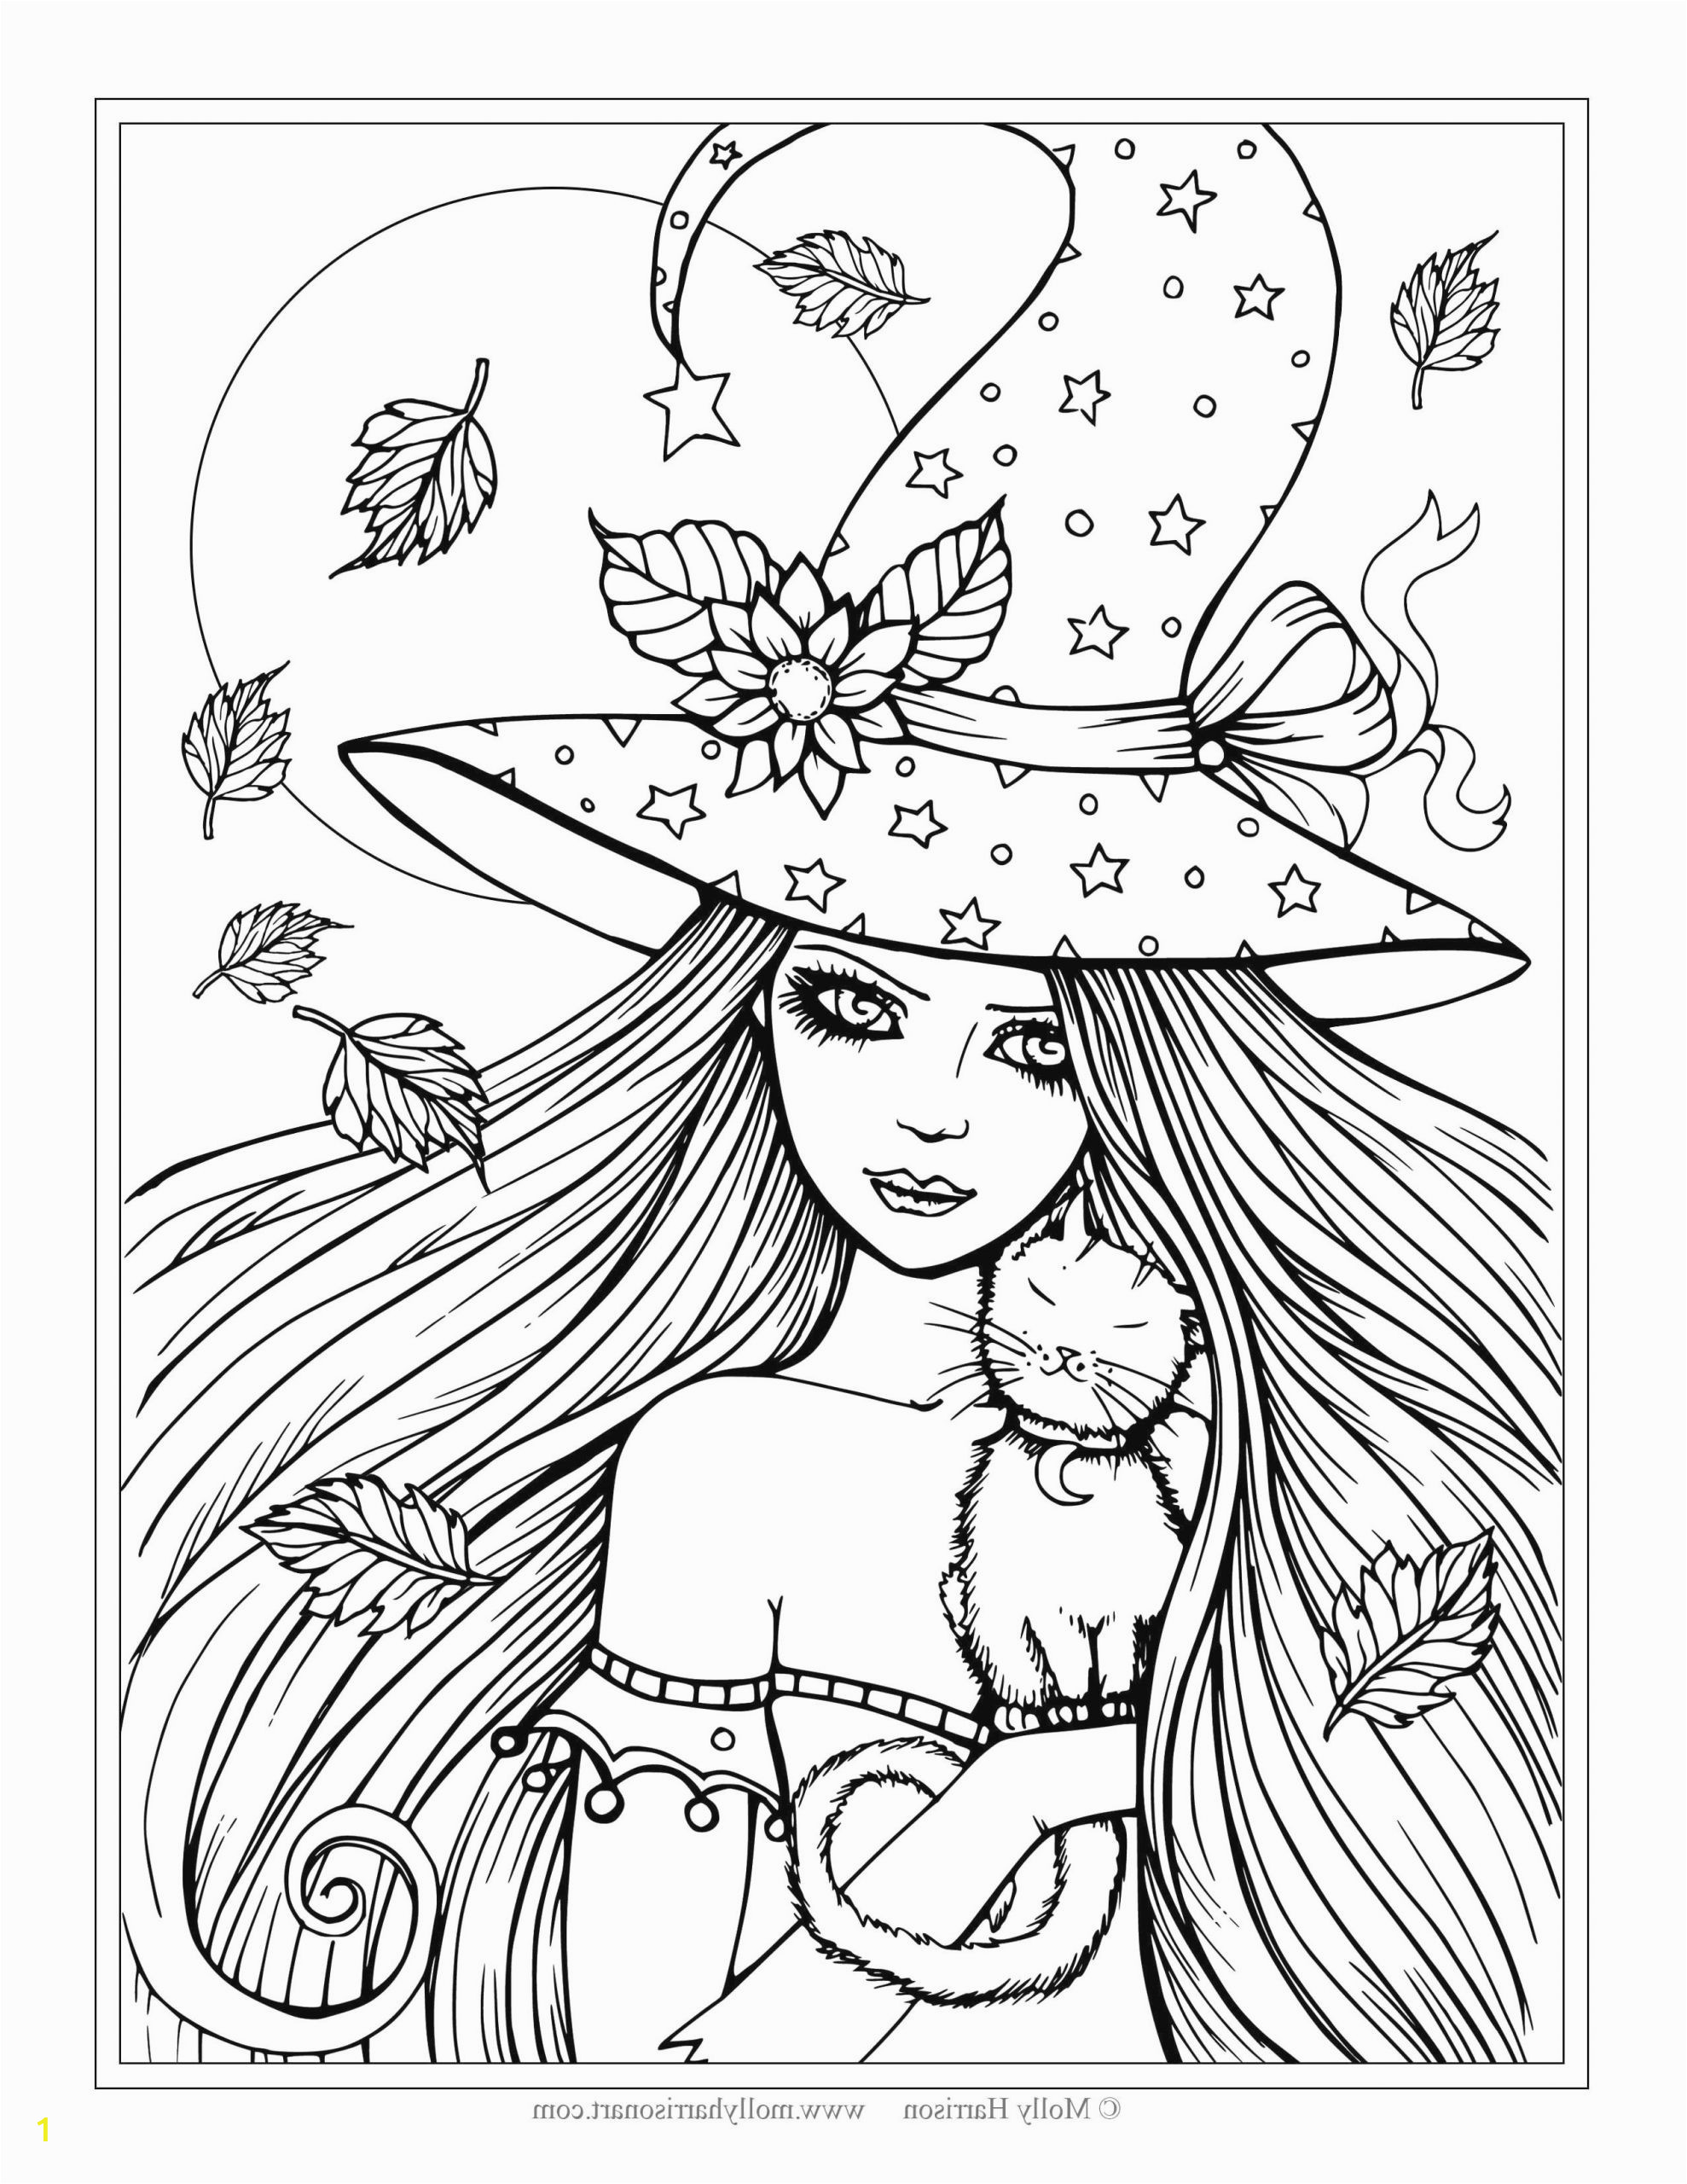 valentine coloring sheets beautiful 28 luxury image valentines free coloring page of valentine coloring sheets scaled